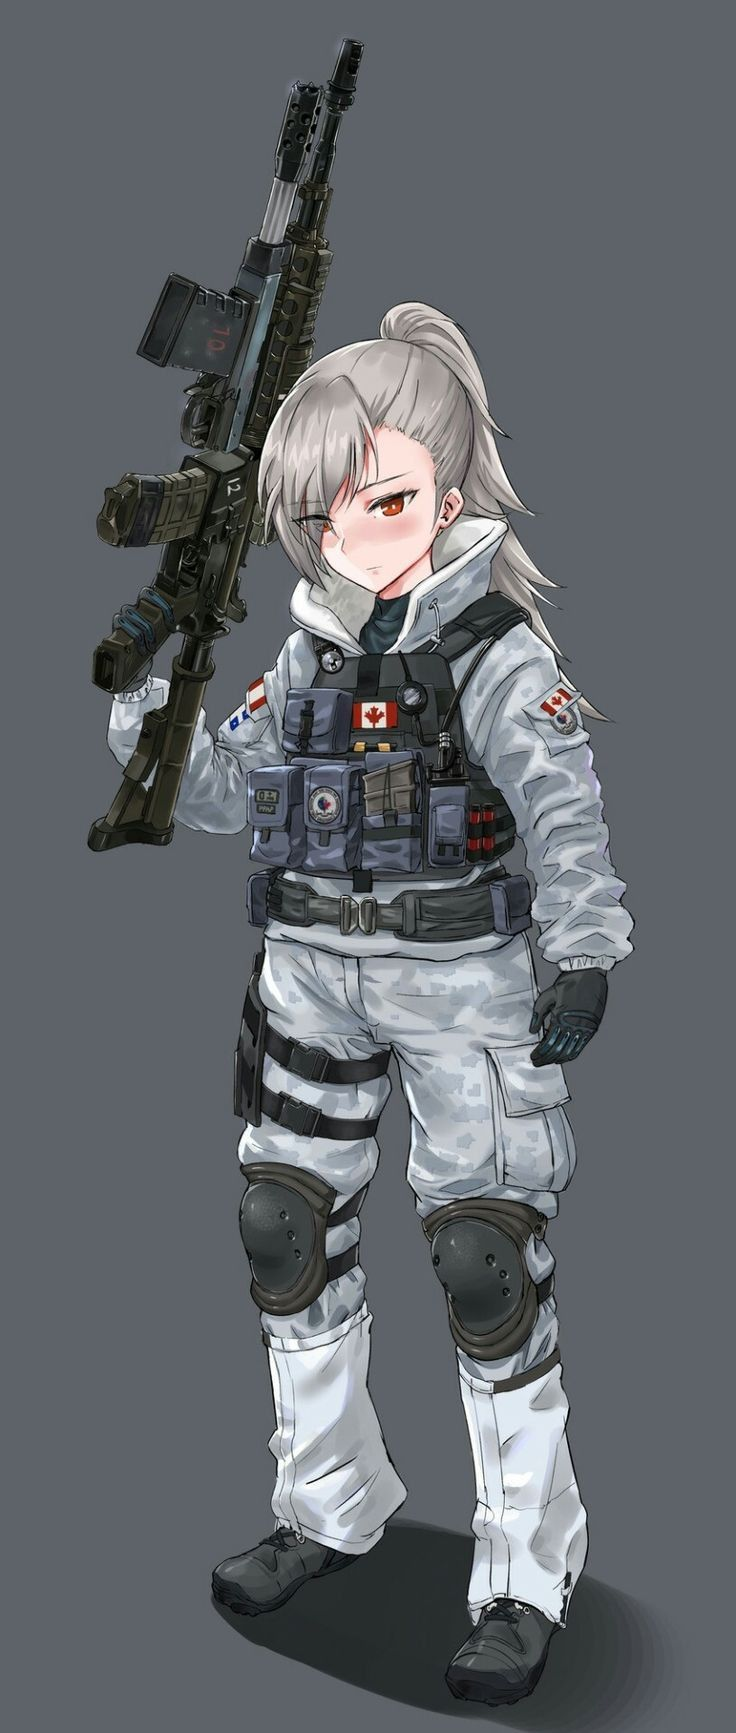 Pin by ethan phuah on anime character in 2018 pinterest dessin manga dessin militaire and - Dessins manga fille ...